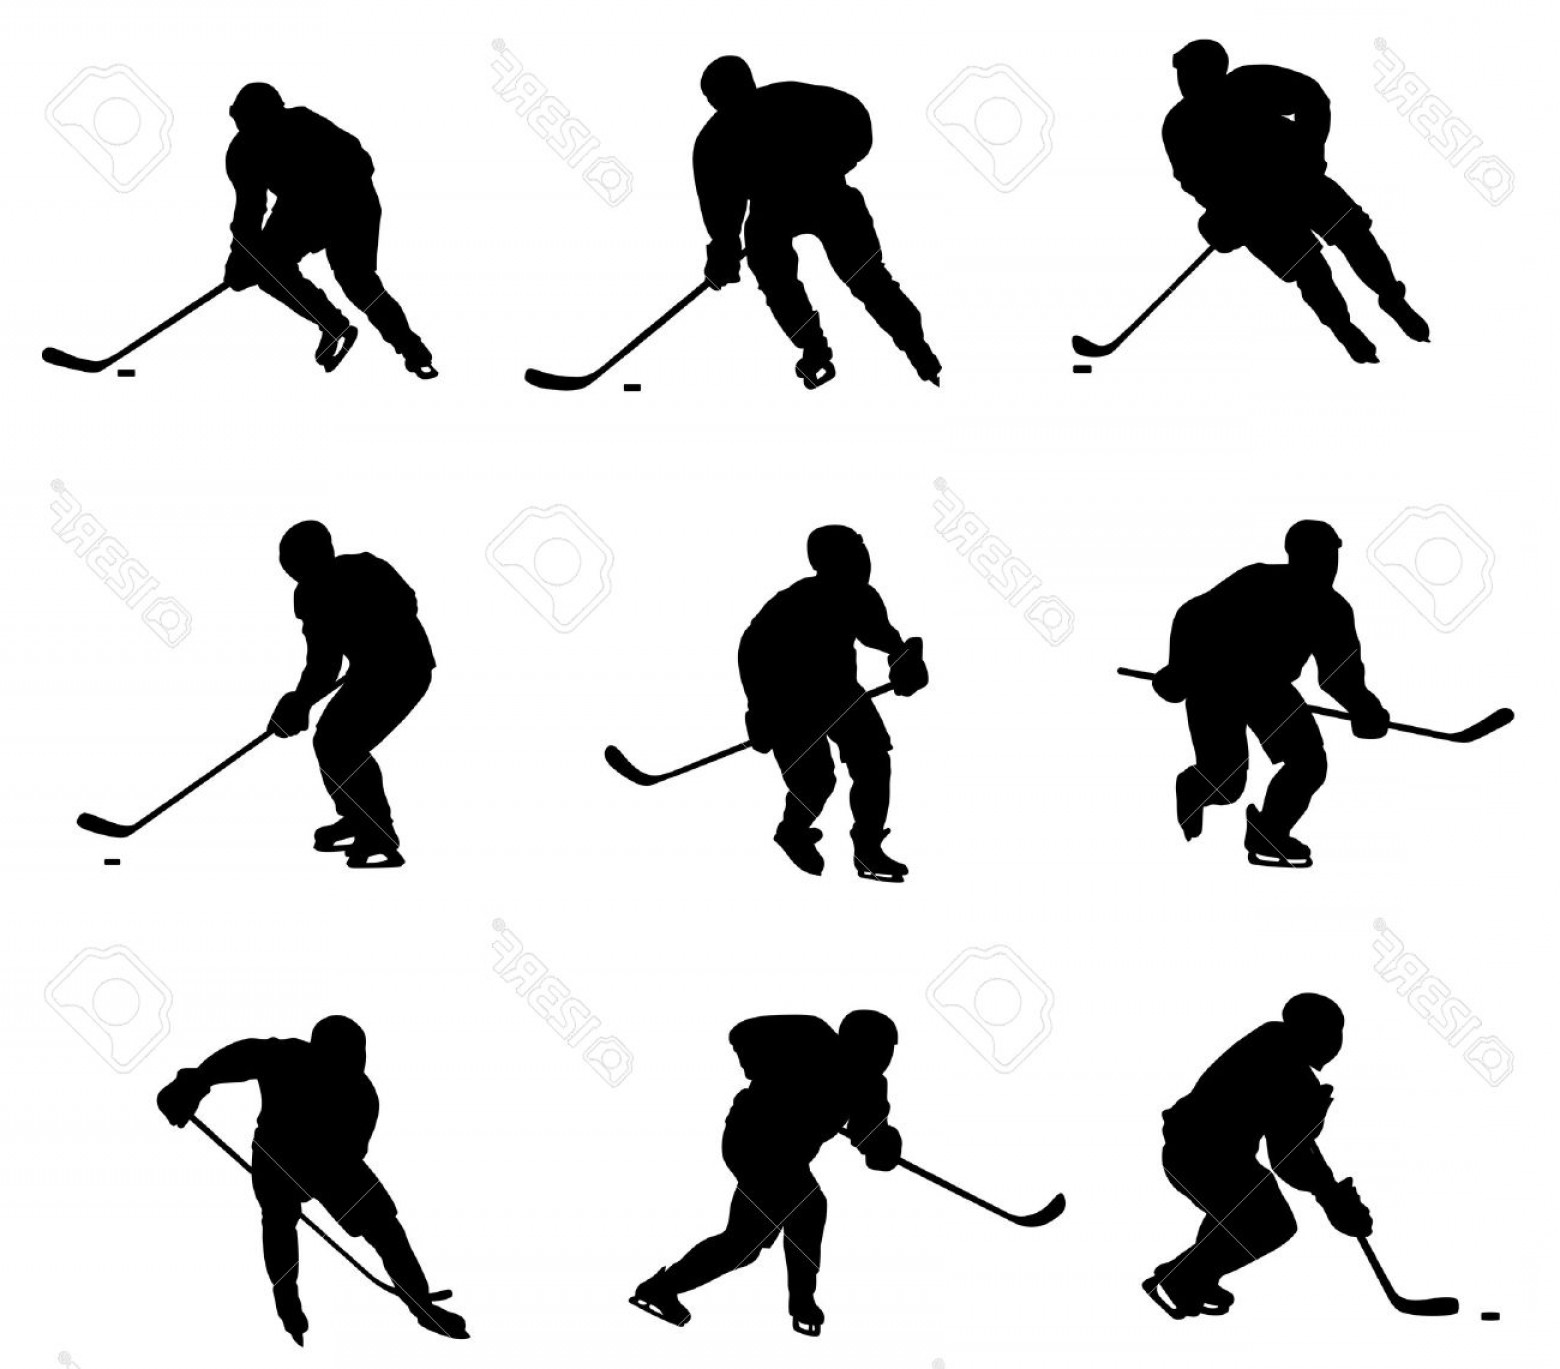 Hockey Player Silhouette Vector: Photoabstract Vector Illustration Of Hockey Player Silhouette